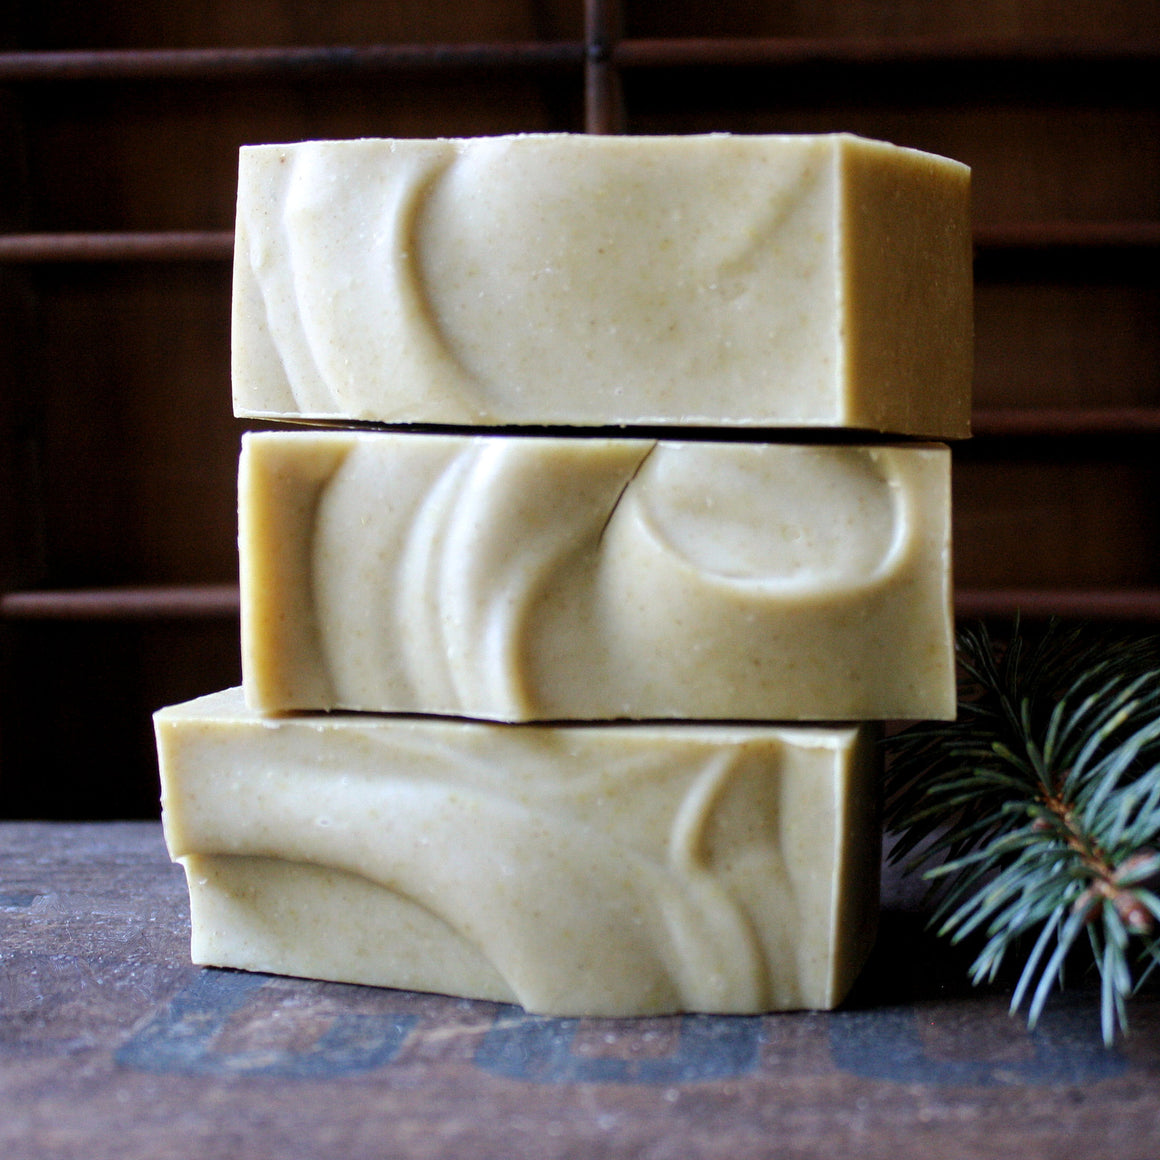 The Hiker Cold Process Soap